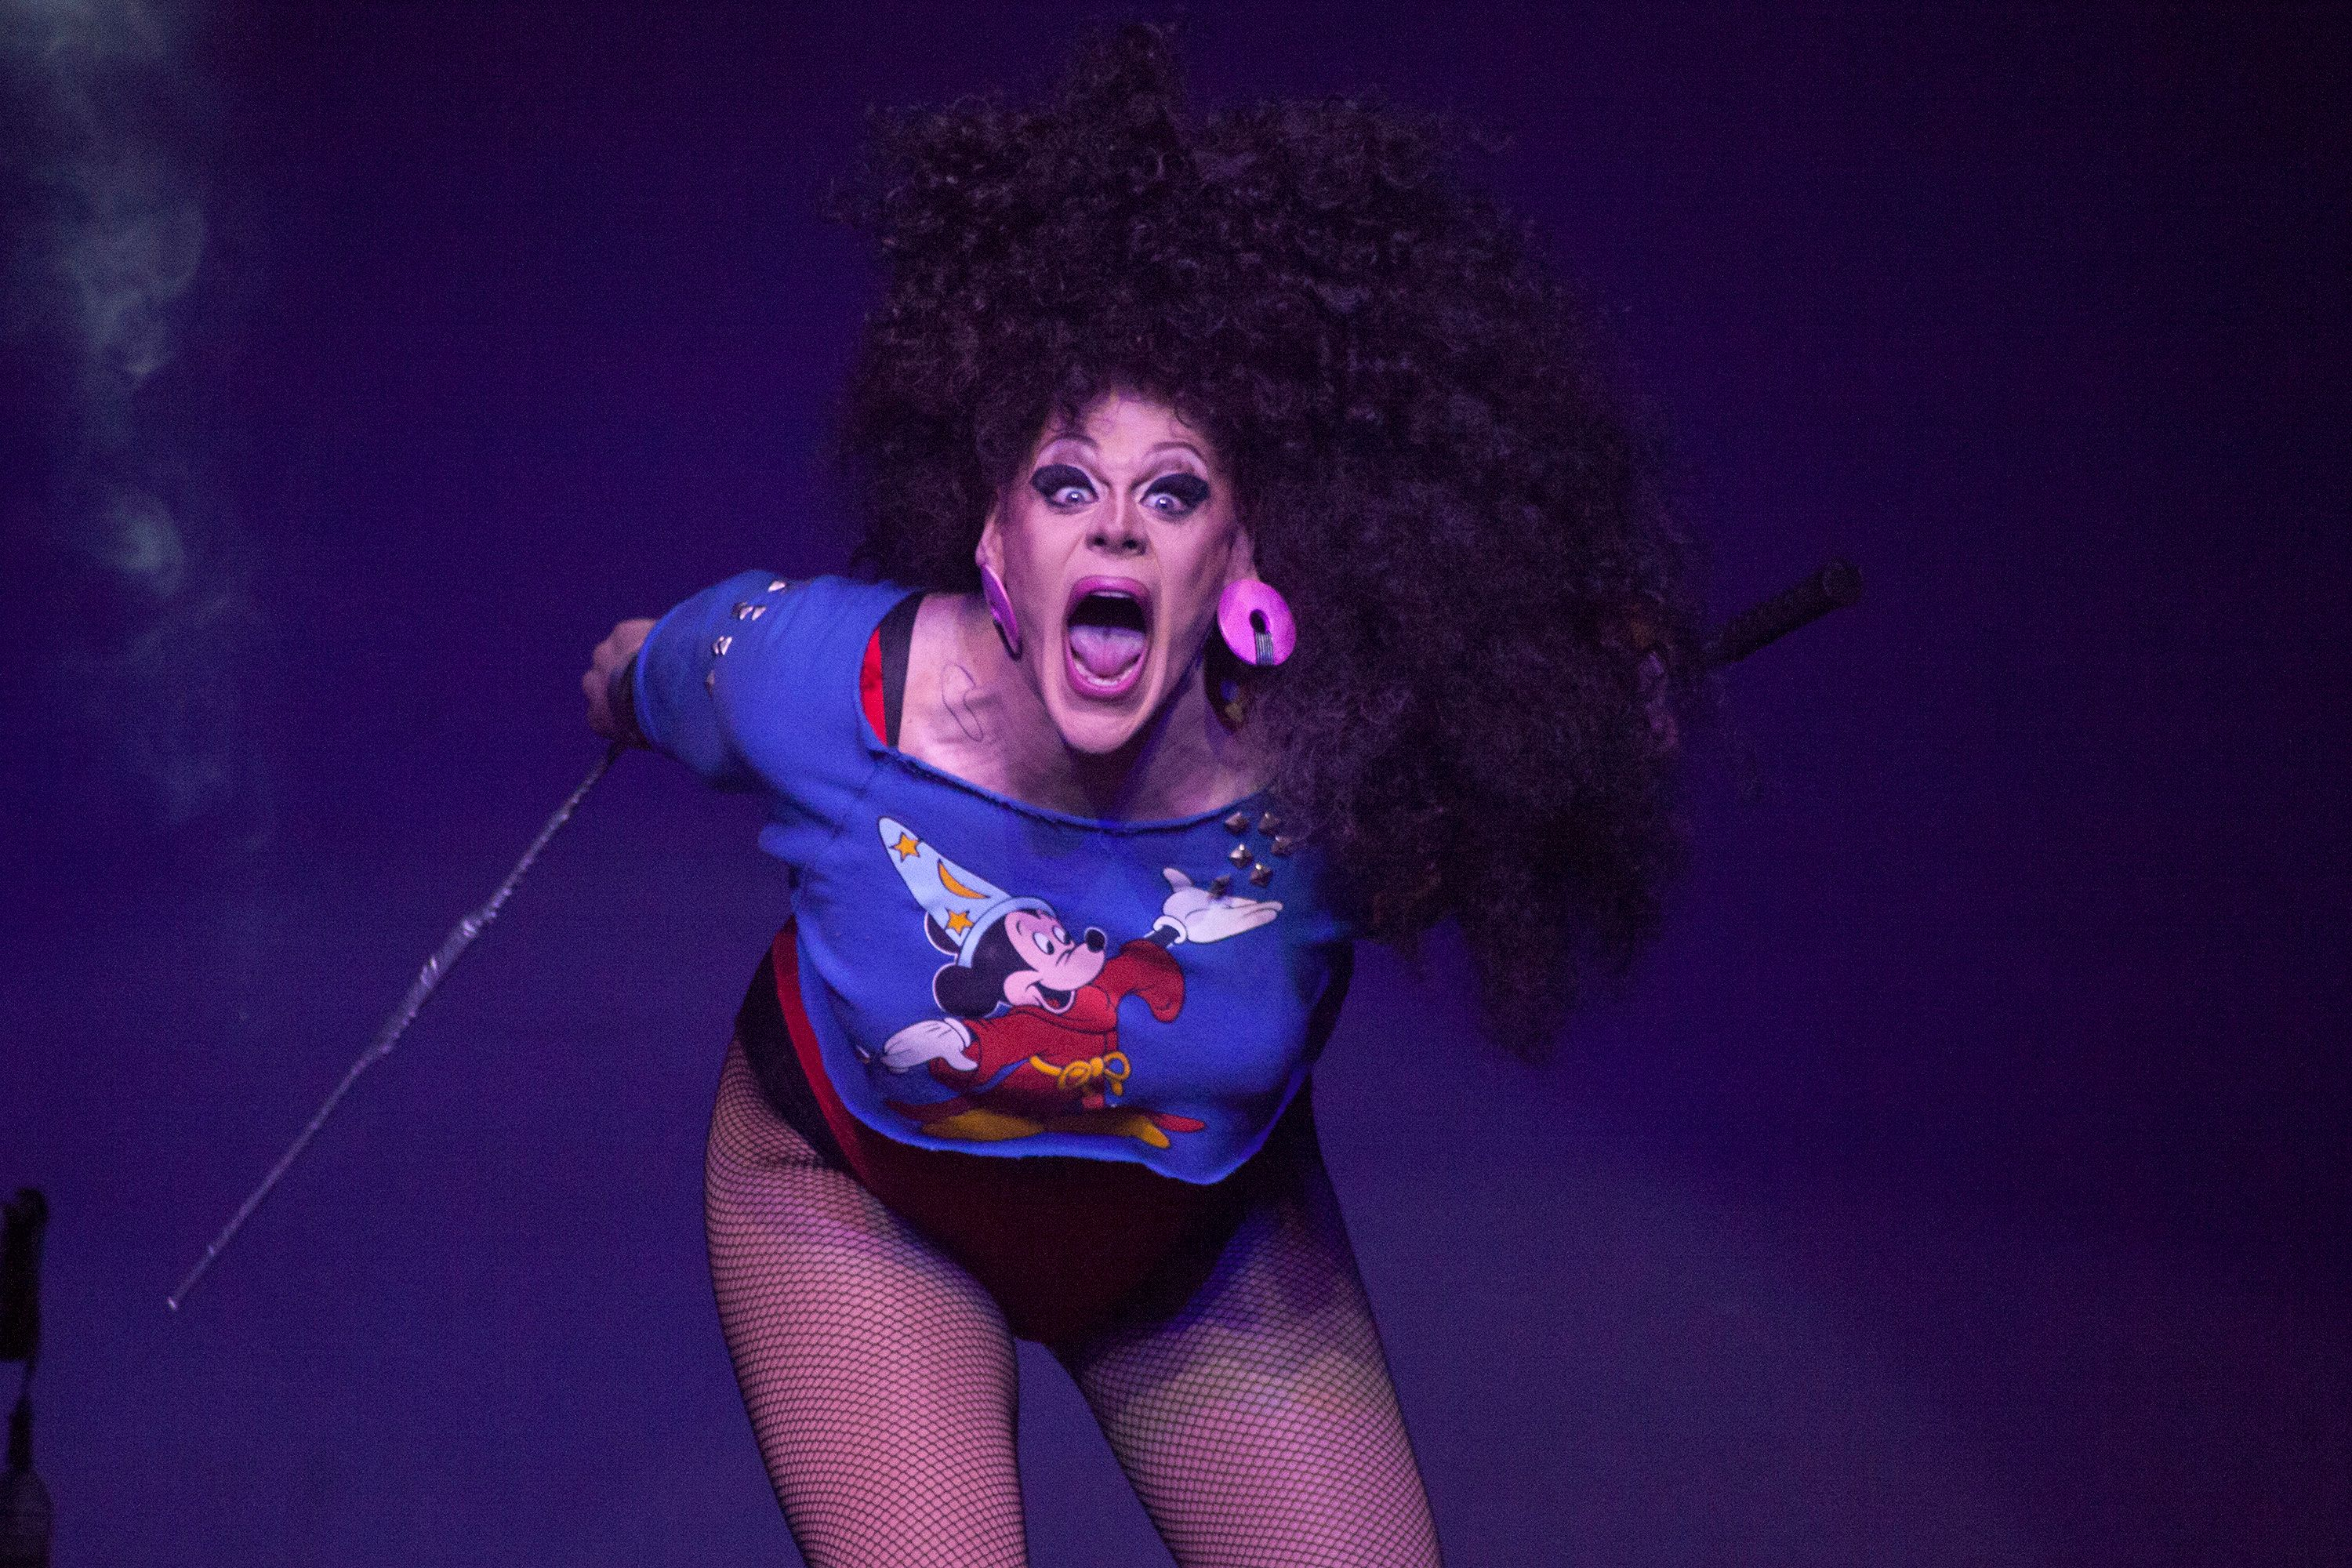 NEW YORK, NY - FEBRUARY 22:  Thorgy Thor performs onstage during Logo's 'RuPaul's Drag Race' Season 8 Premiere at Stage 48 on February 22, 2016 in New York City.  (Photo by Santiago Felipe/Getty Images)